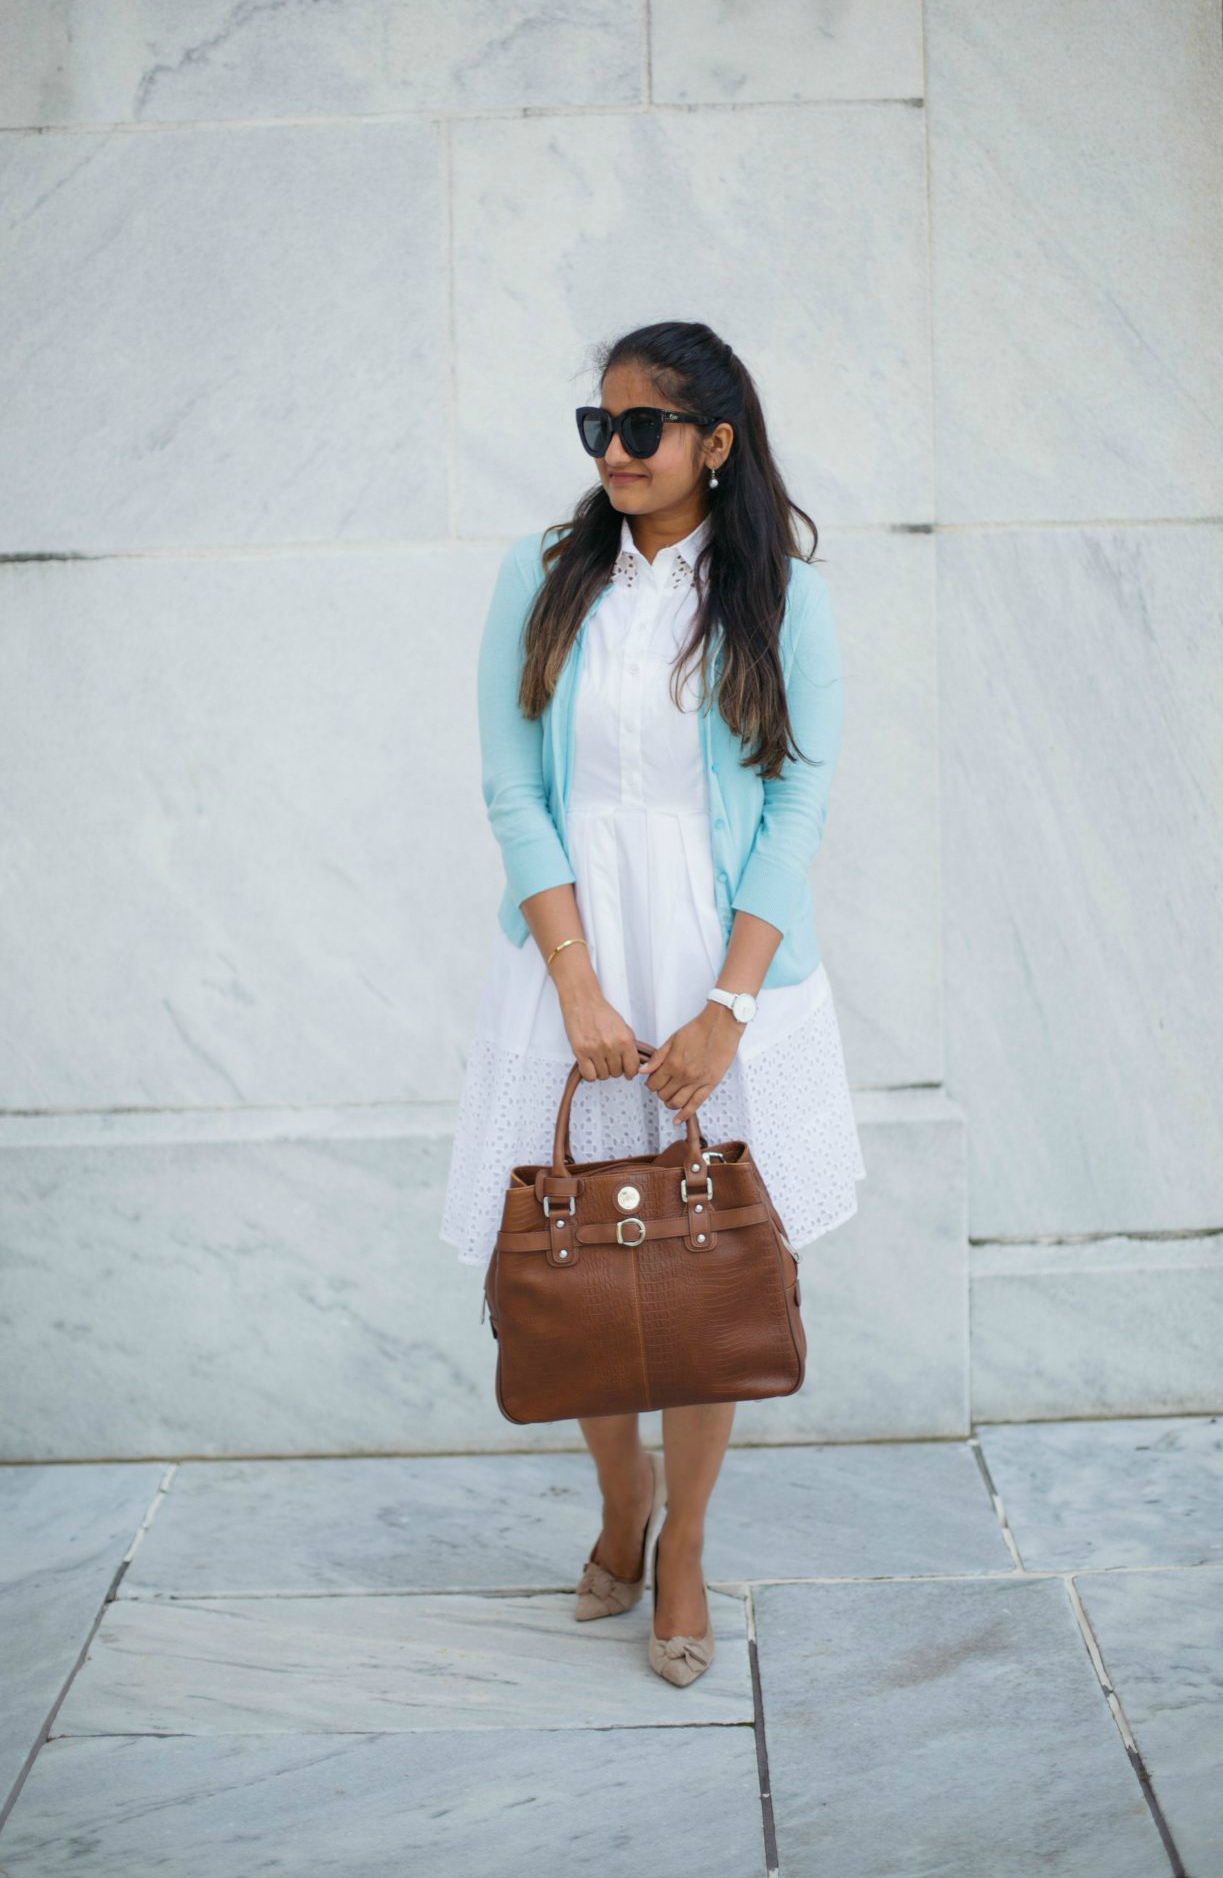 Wearing Ann taylor white eyelet shirtdress with Jill-e Designs E-GO Career Bag | Colorful Fall Work Outfits featured by popular US modest fashion blogger, Dreaming Loud